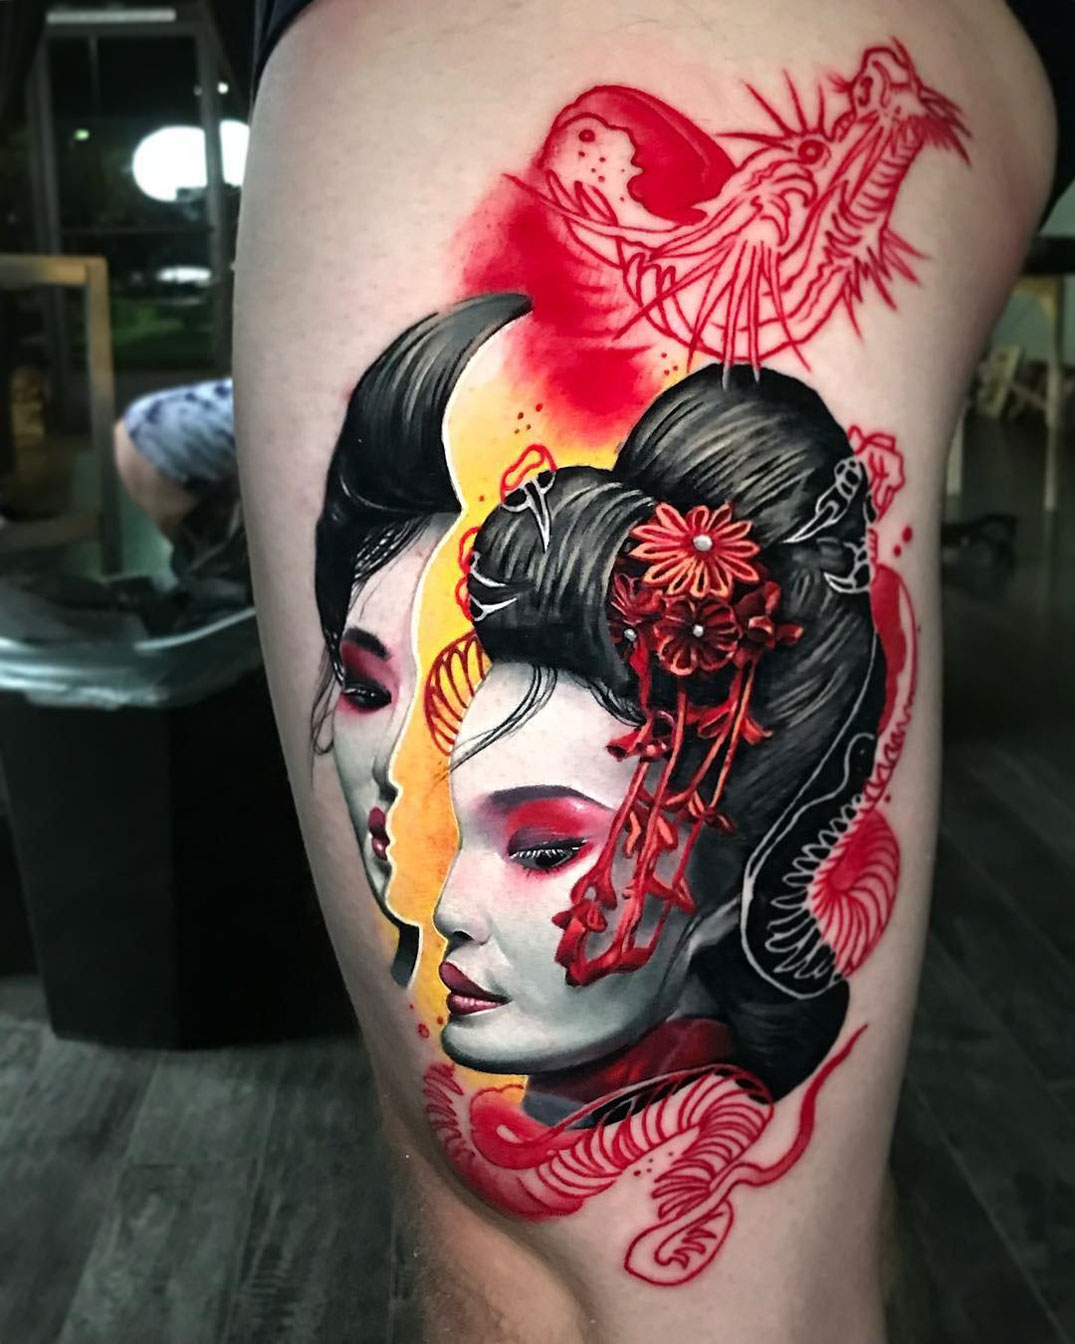 Geisha leg tattoo